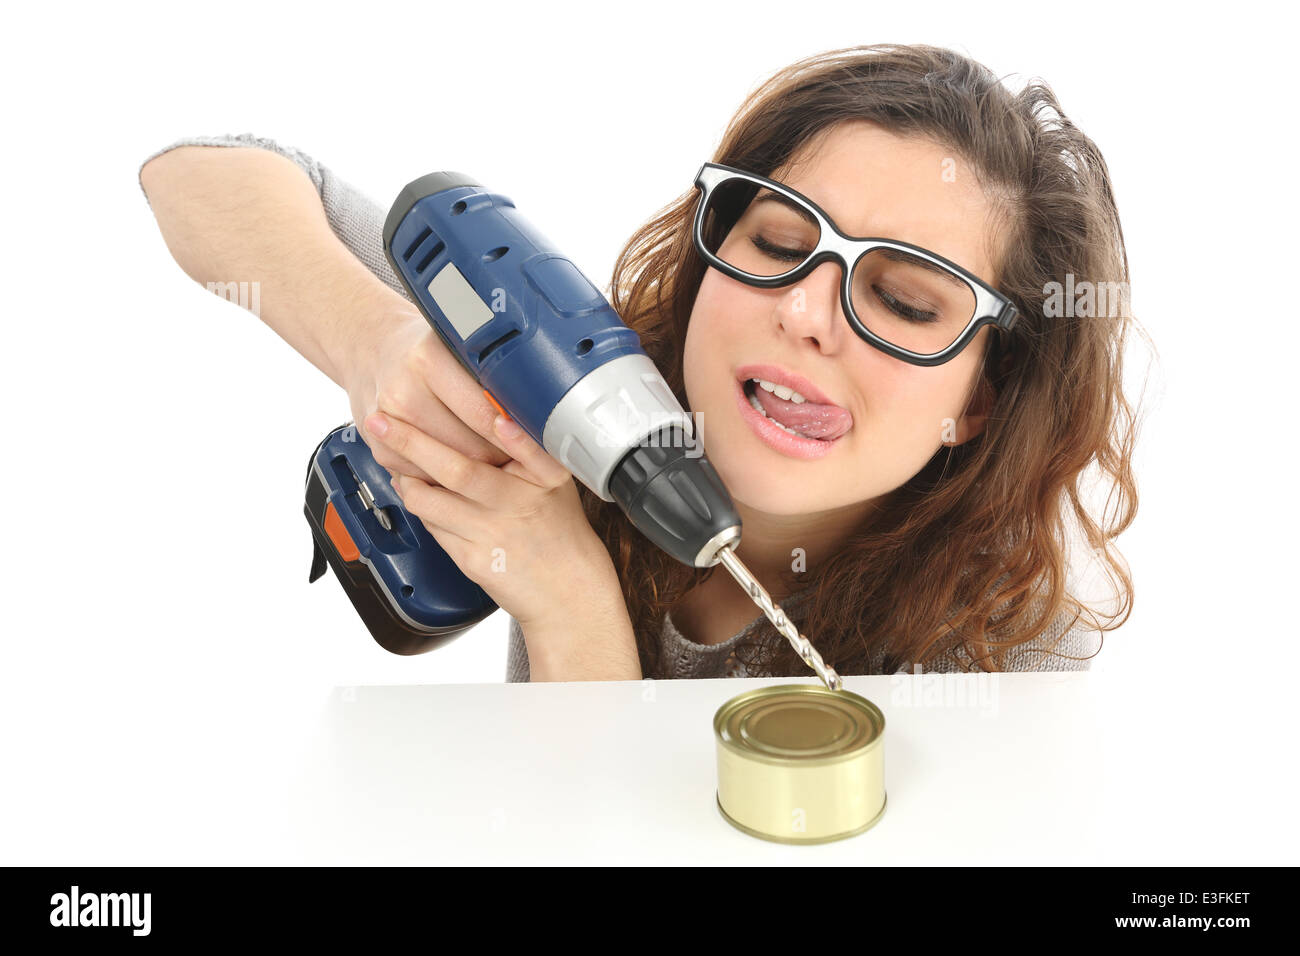 Funny geek girl trying to easy open a tin with a drill isolated on a white background - Stock Image